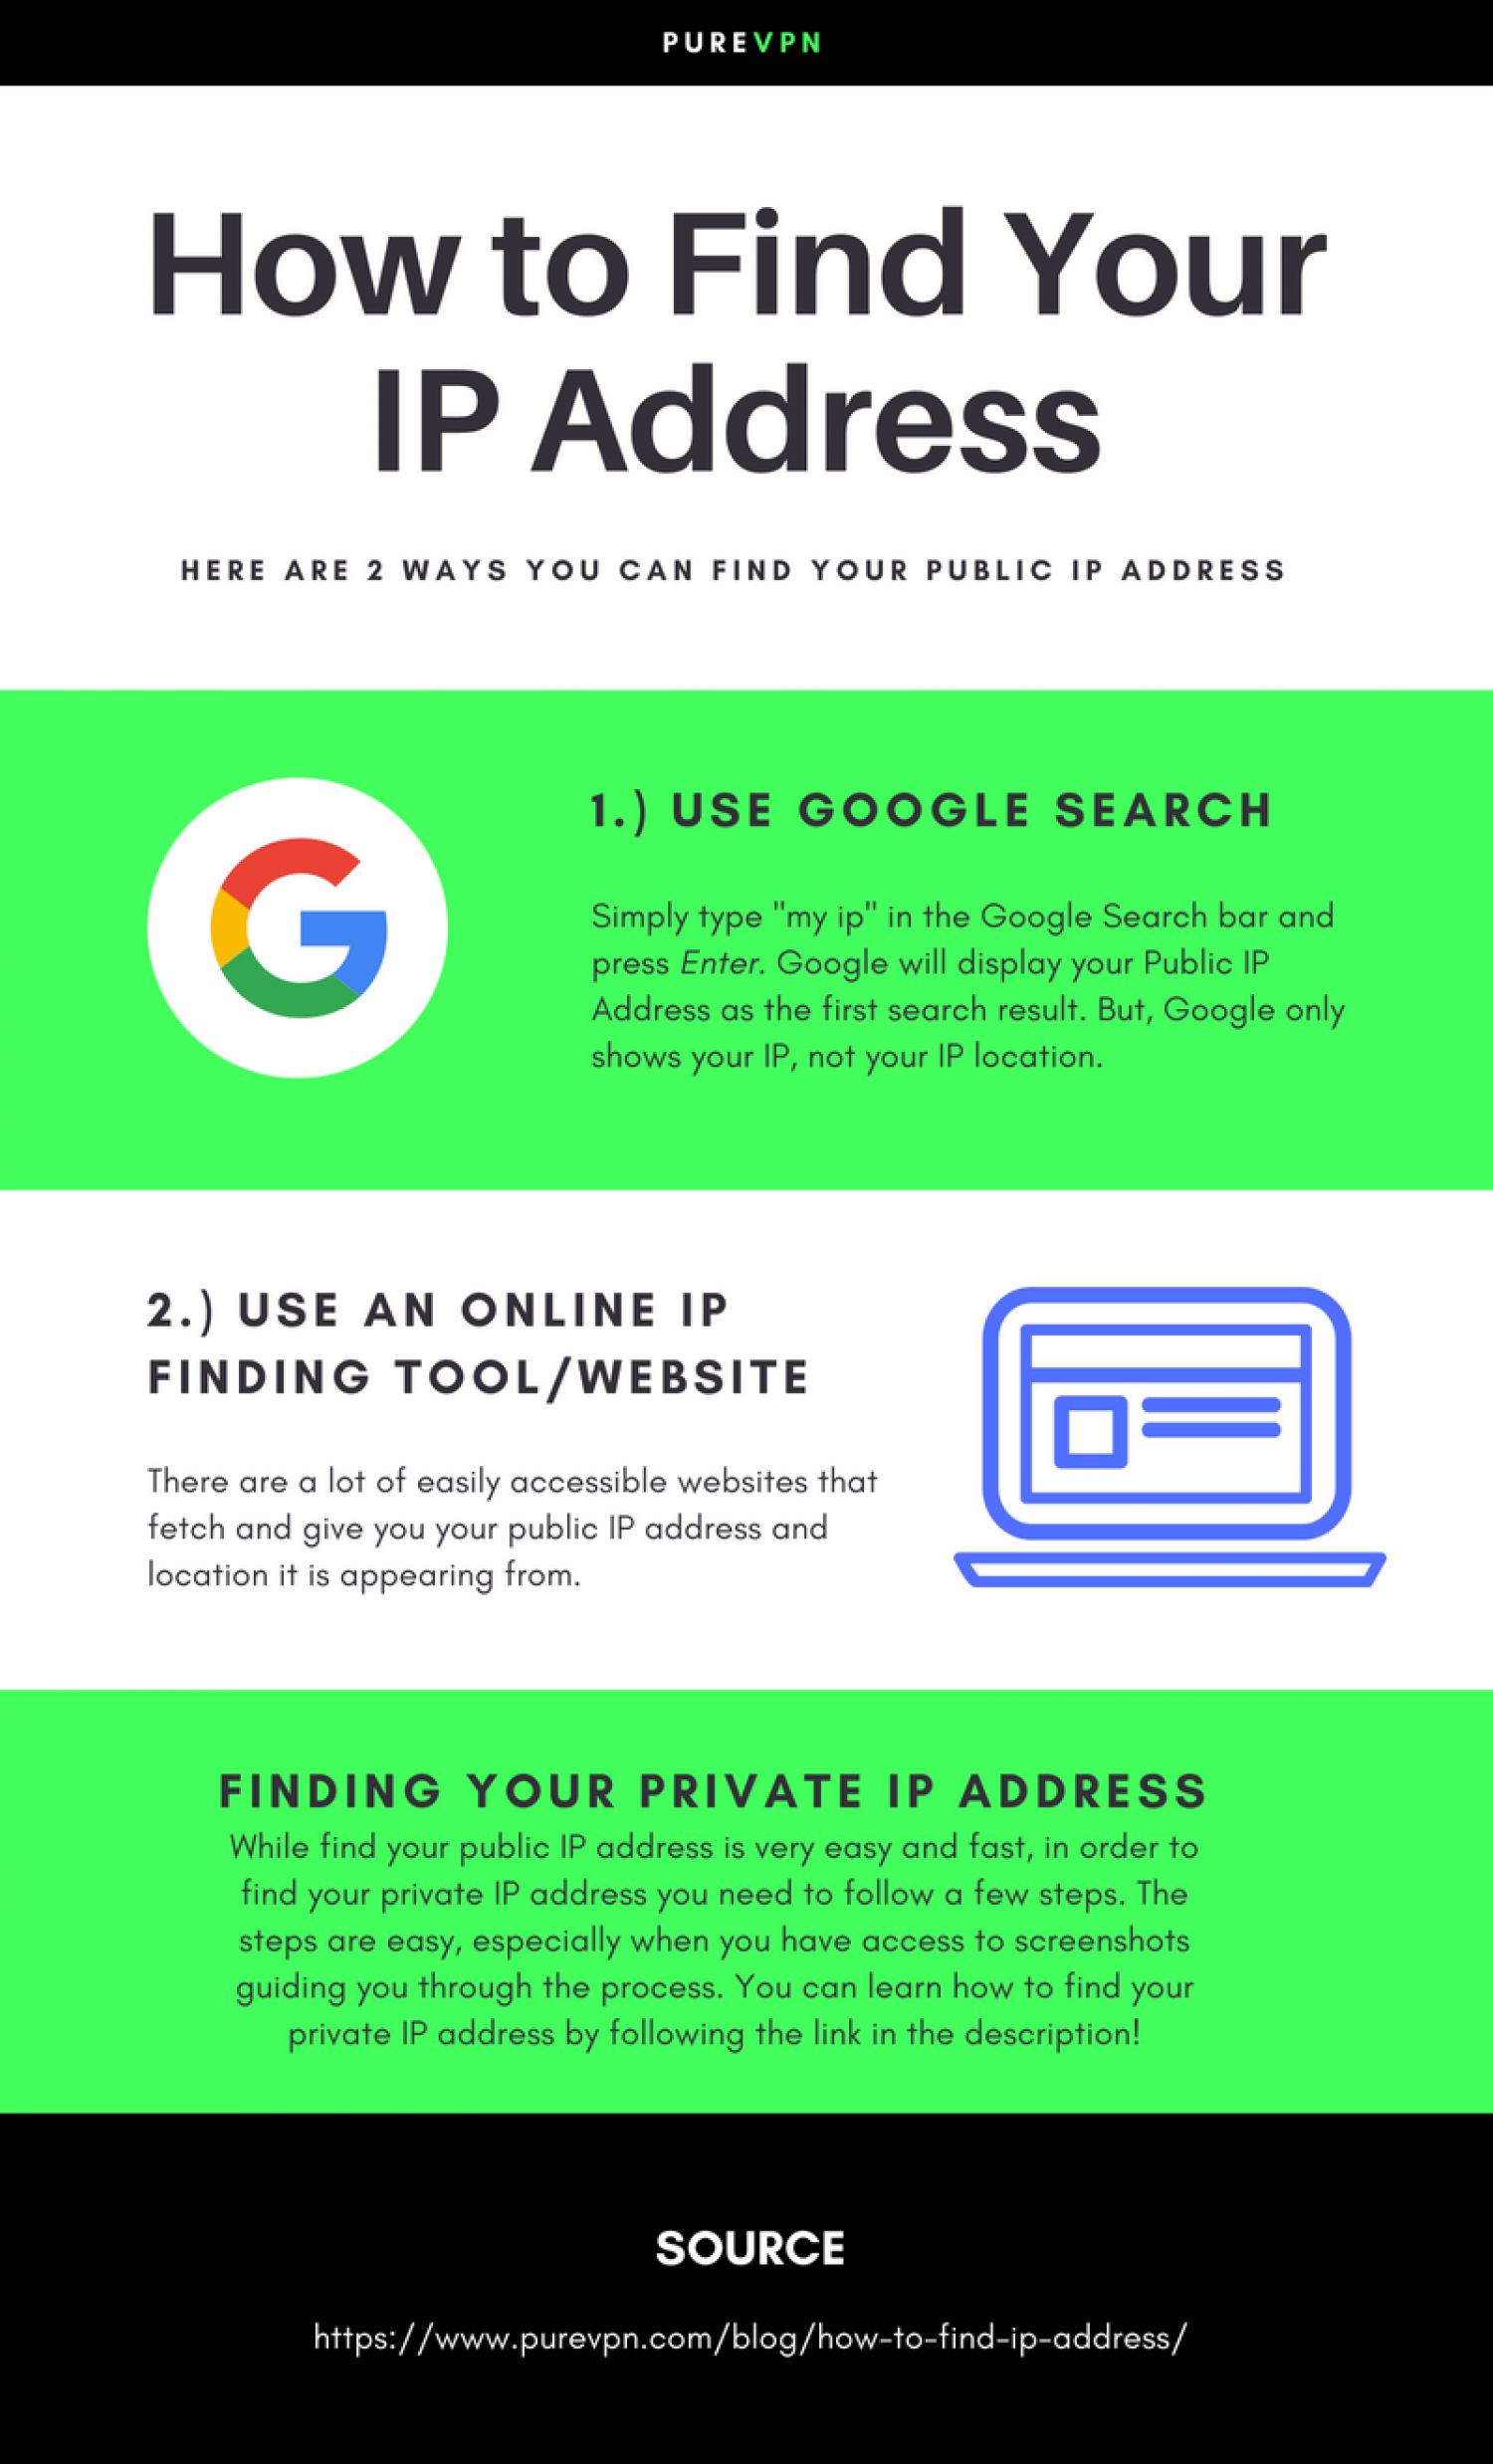 How to Find Your Public and Private IP Address Infographic